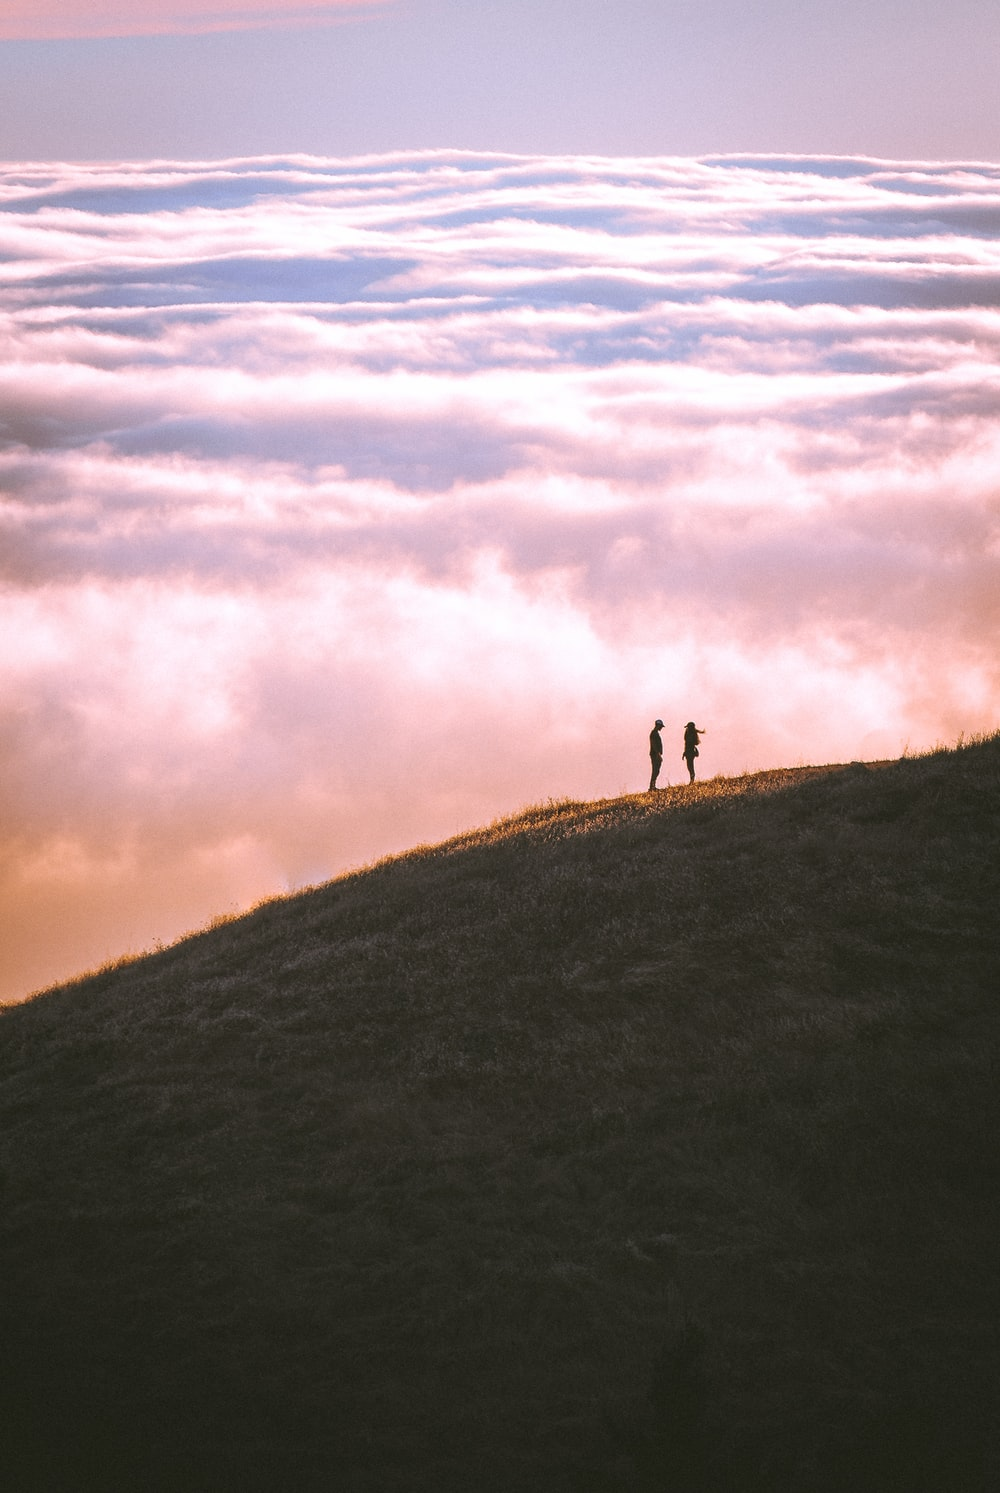 Curiosity pictures hd download free images on unsplash couple standing on grass field mountain stopboris Images